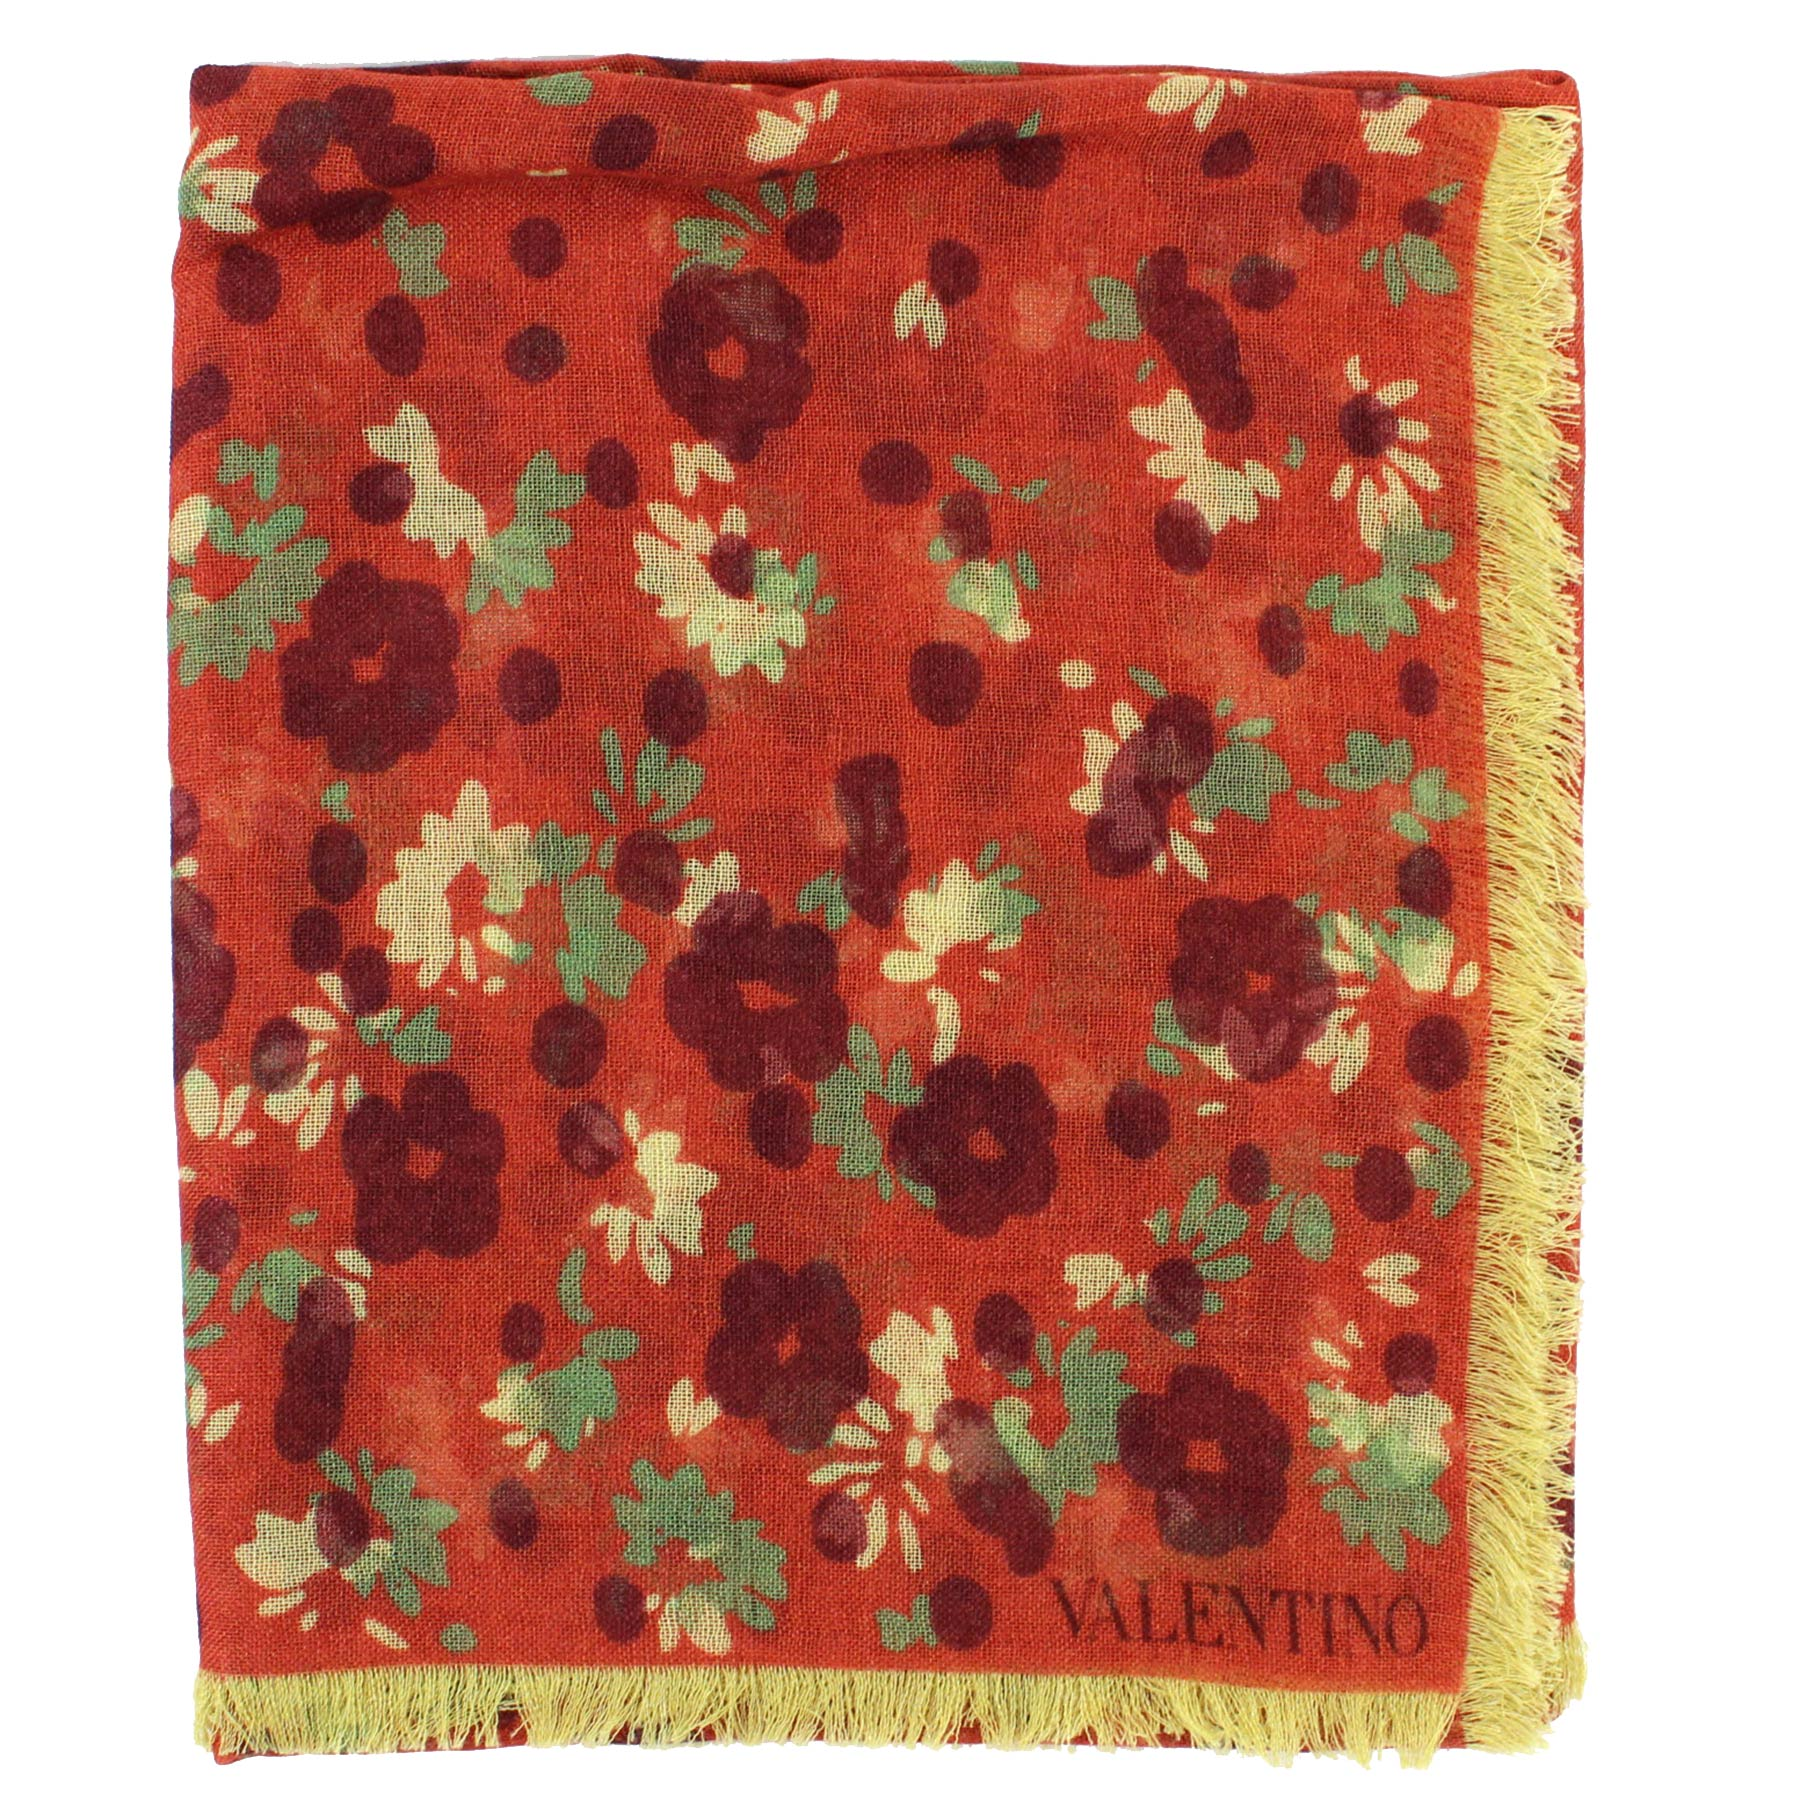 Valentino Scarf Rust Orange Floral Wool Silk - Extra Large Square Wrap